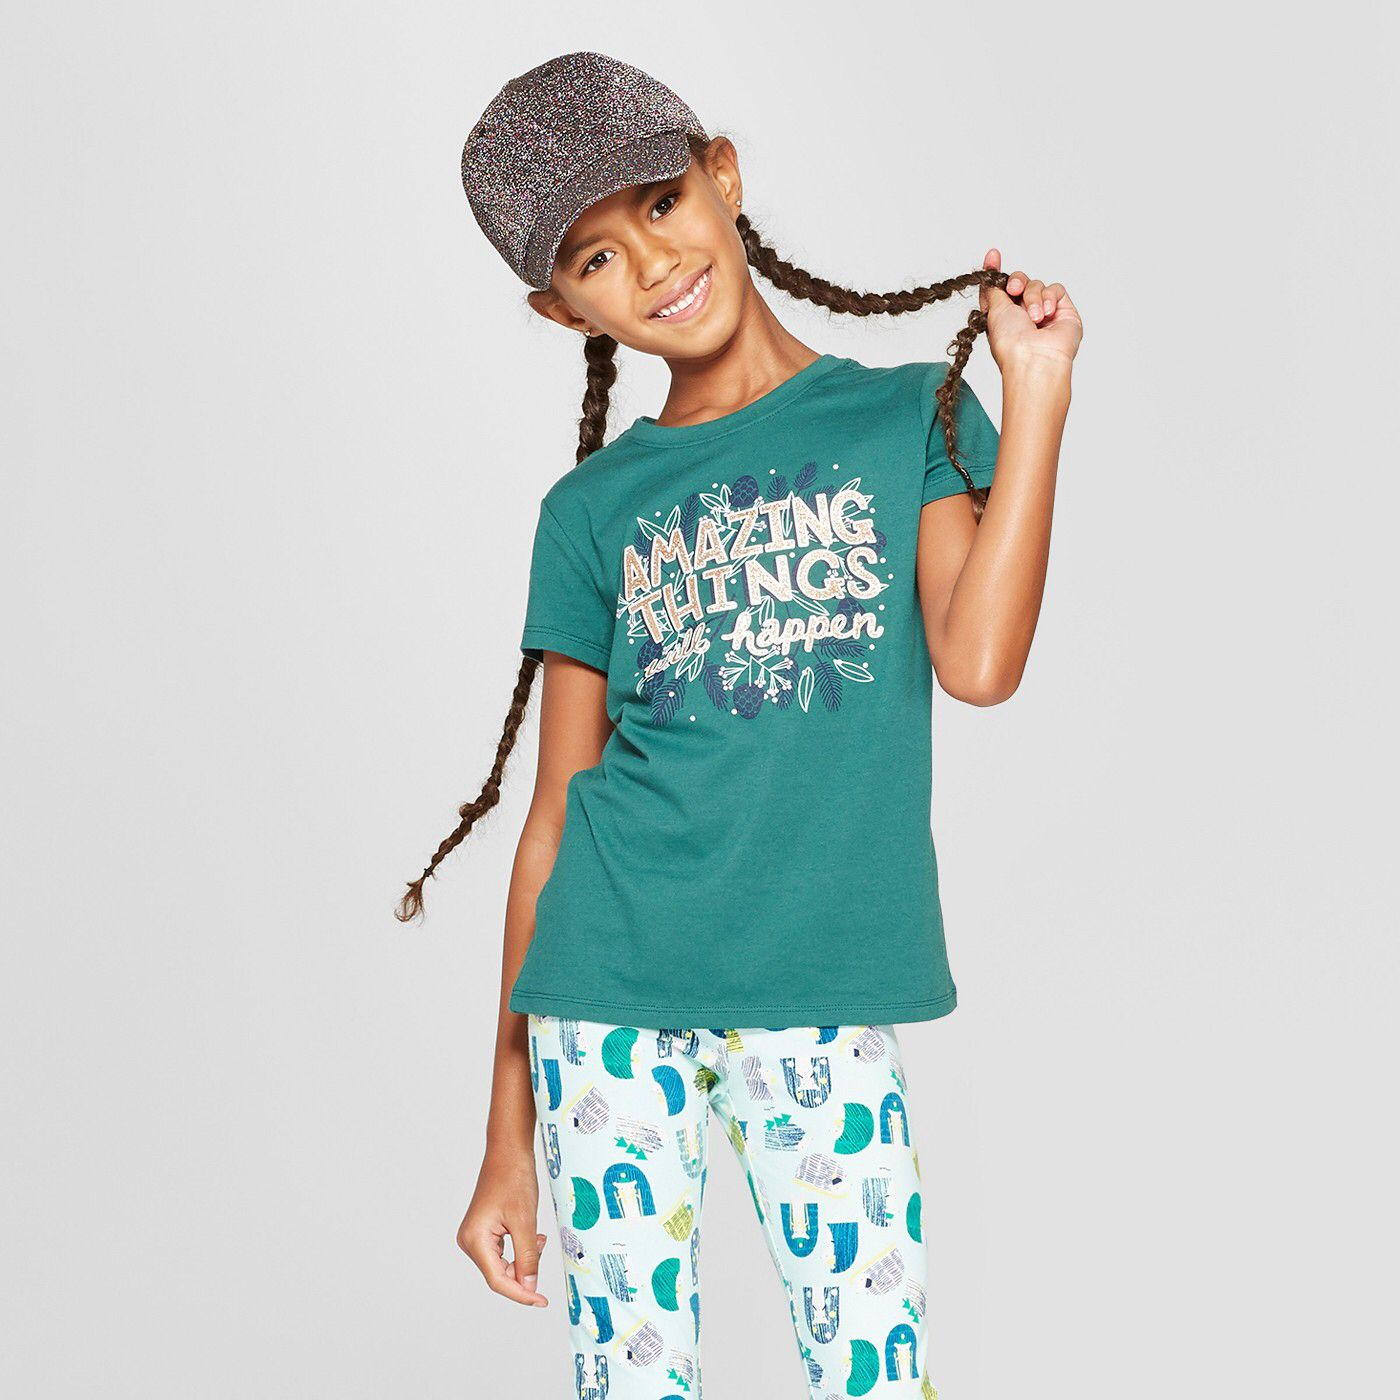 Target art class fashion line for kids this tshirt gives